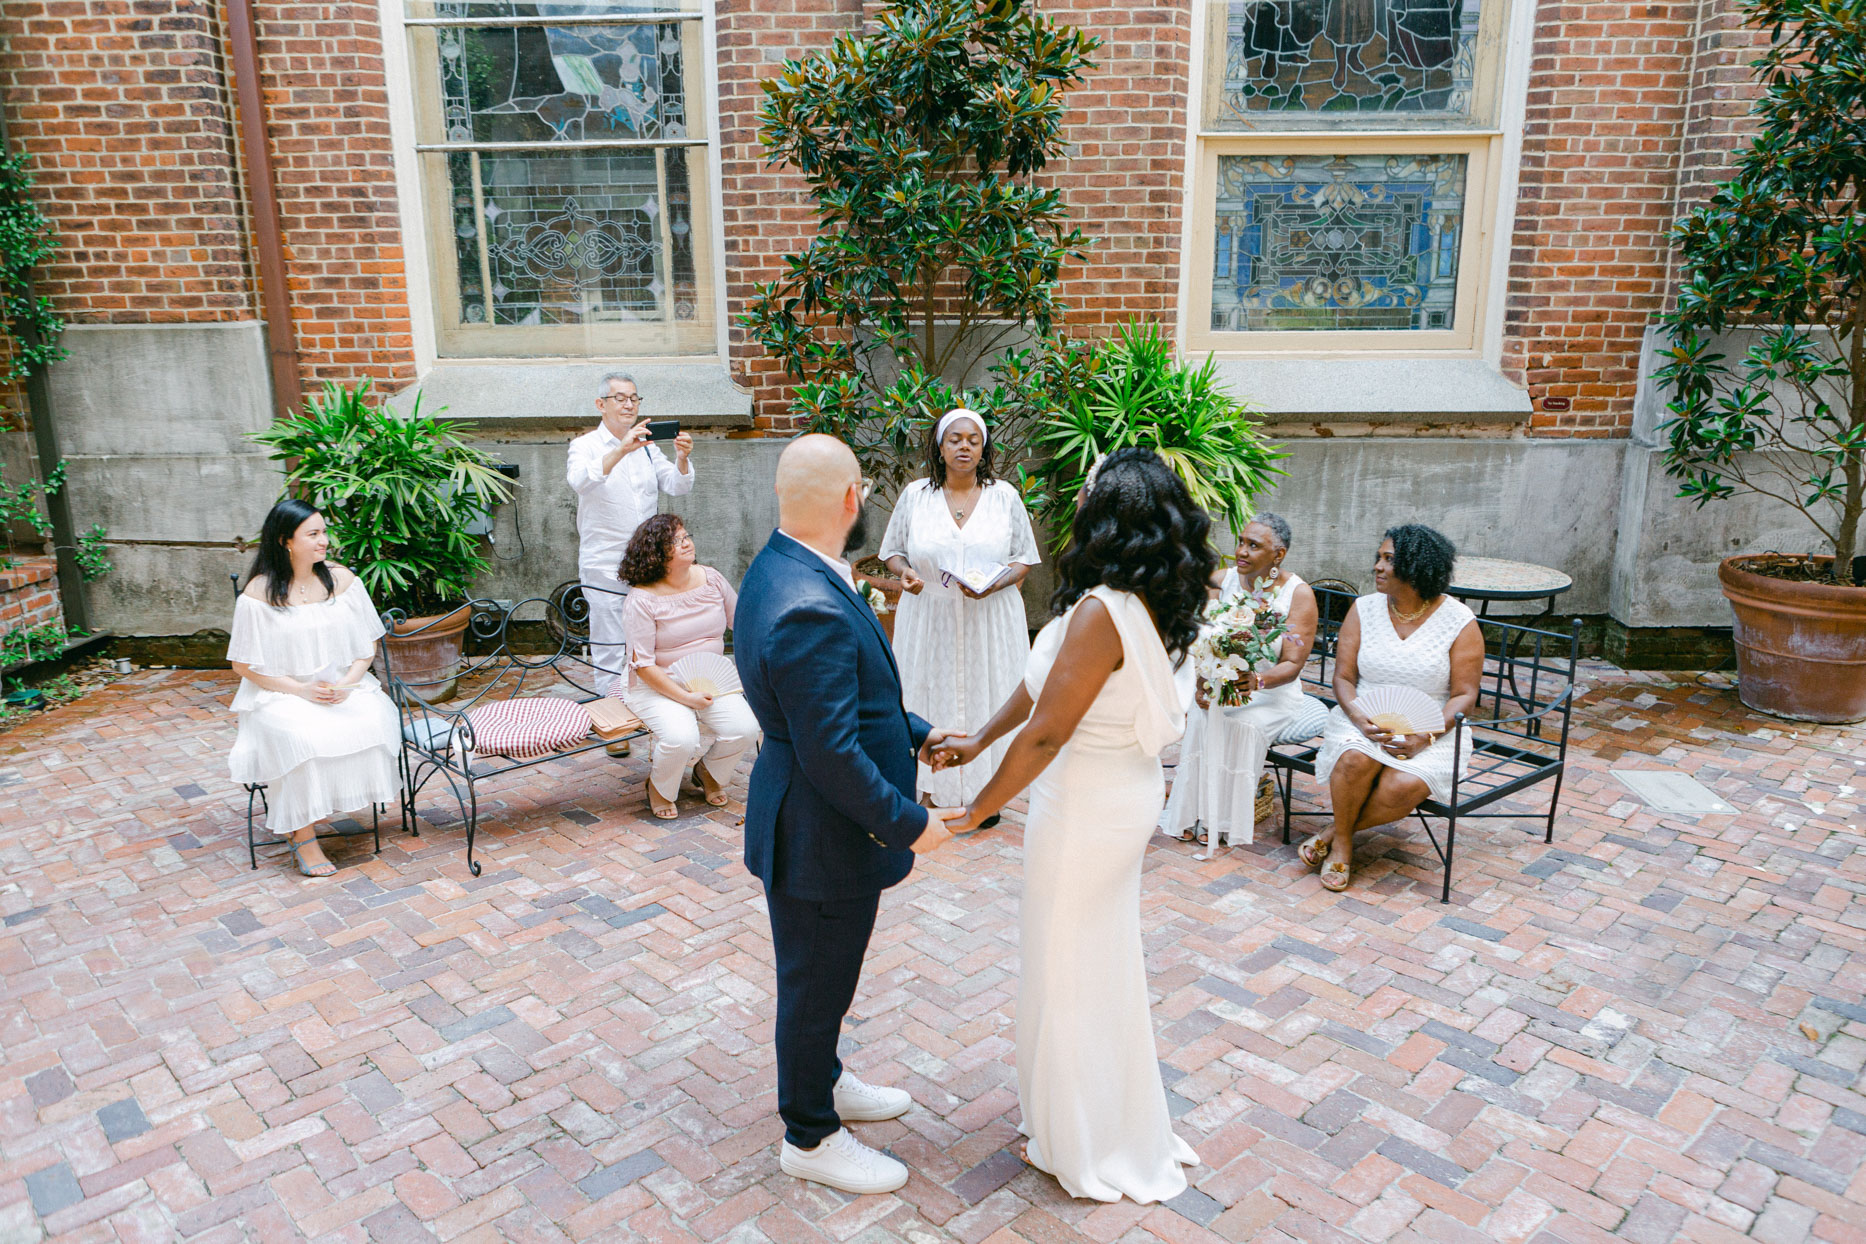 wedding couple during socially distanced ceremony in brick courtyard